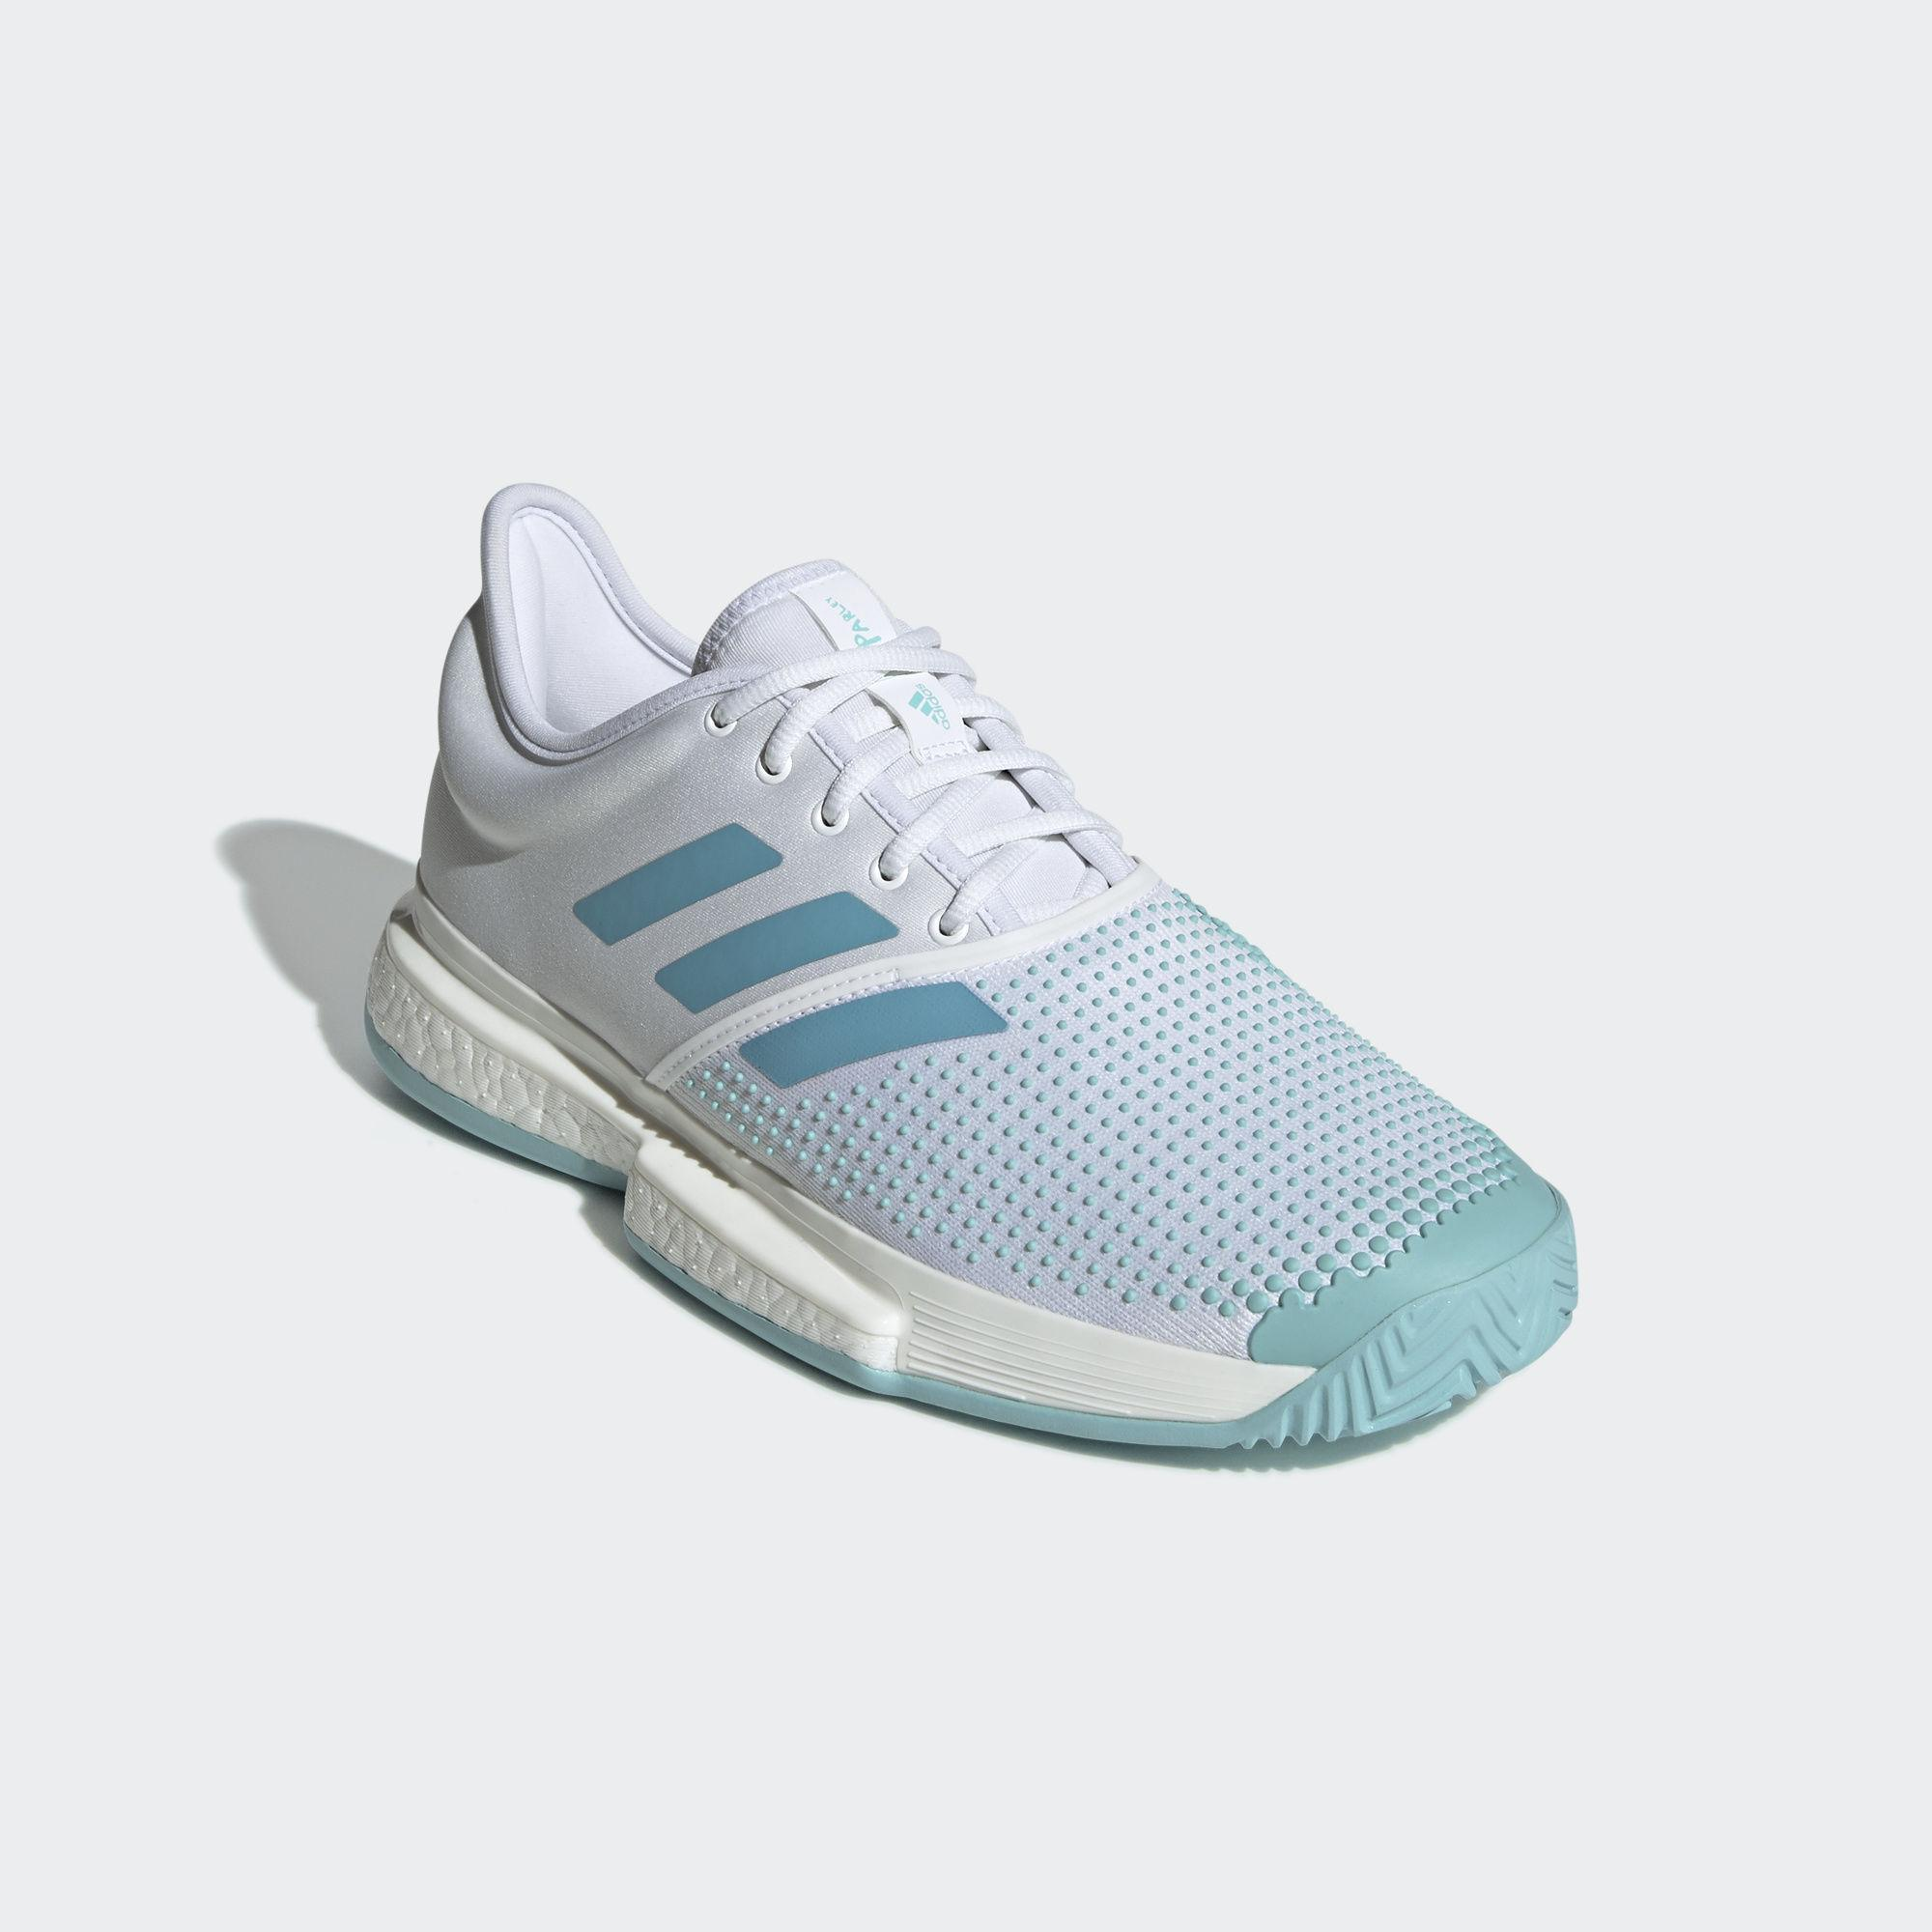 095646889058f Adidas Mens SoleCourt Boost Parley Tennis Shoes - White Blue ...